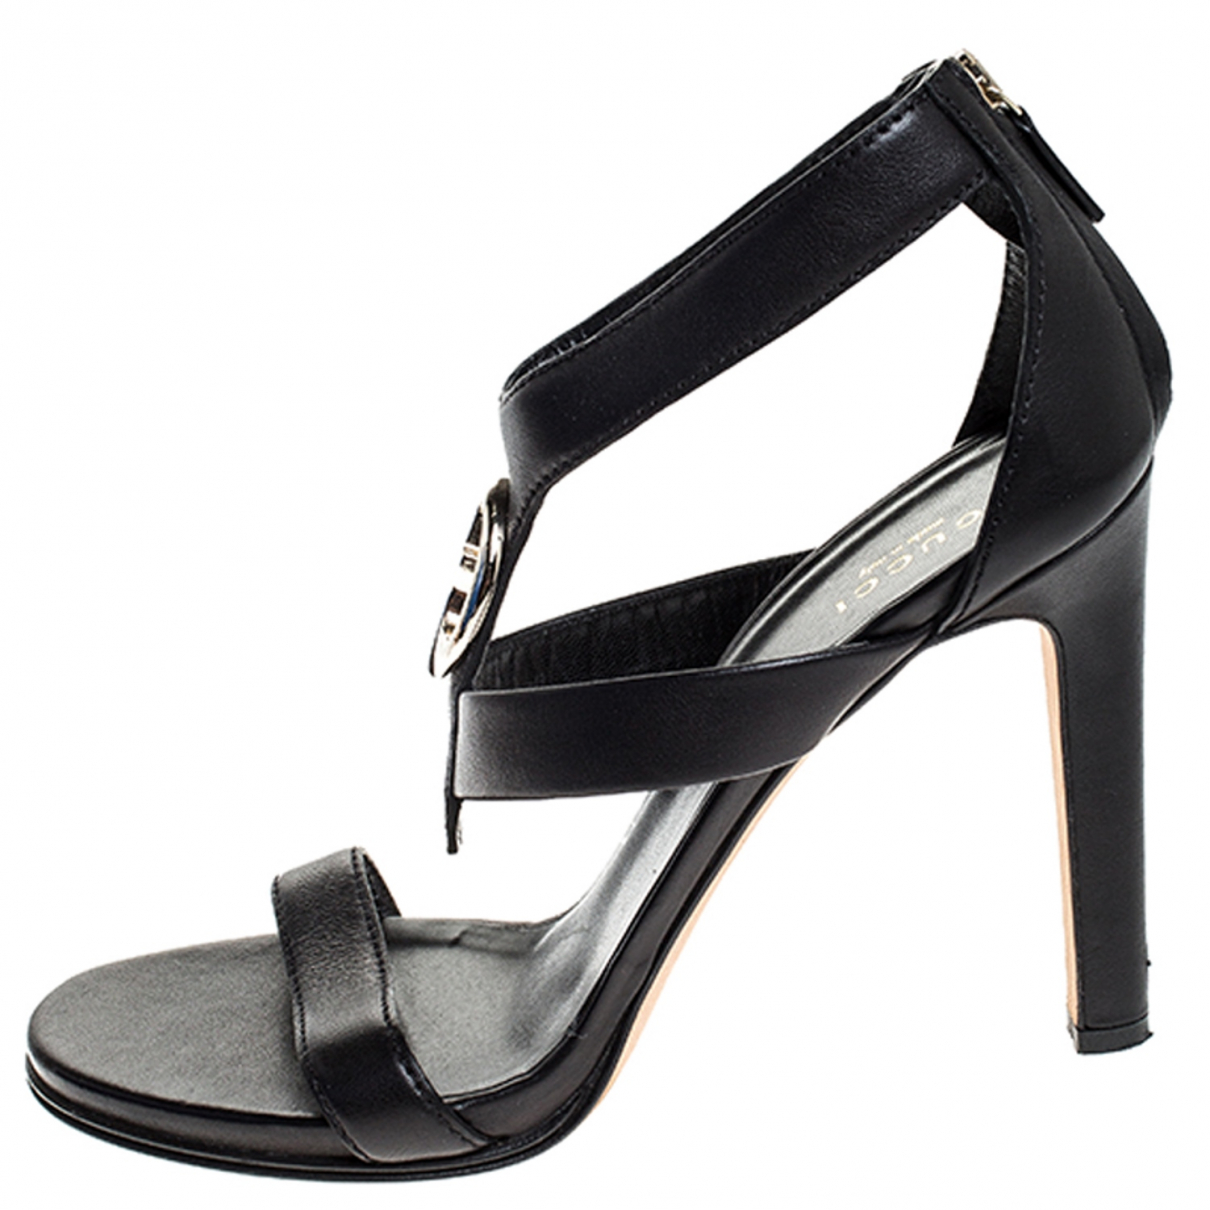 Gucci \N Black Leather Sandals for Women 8 US